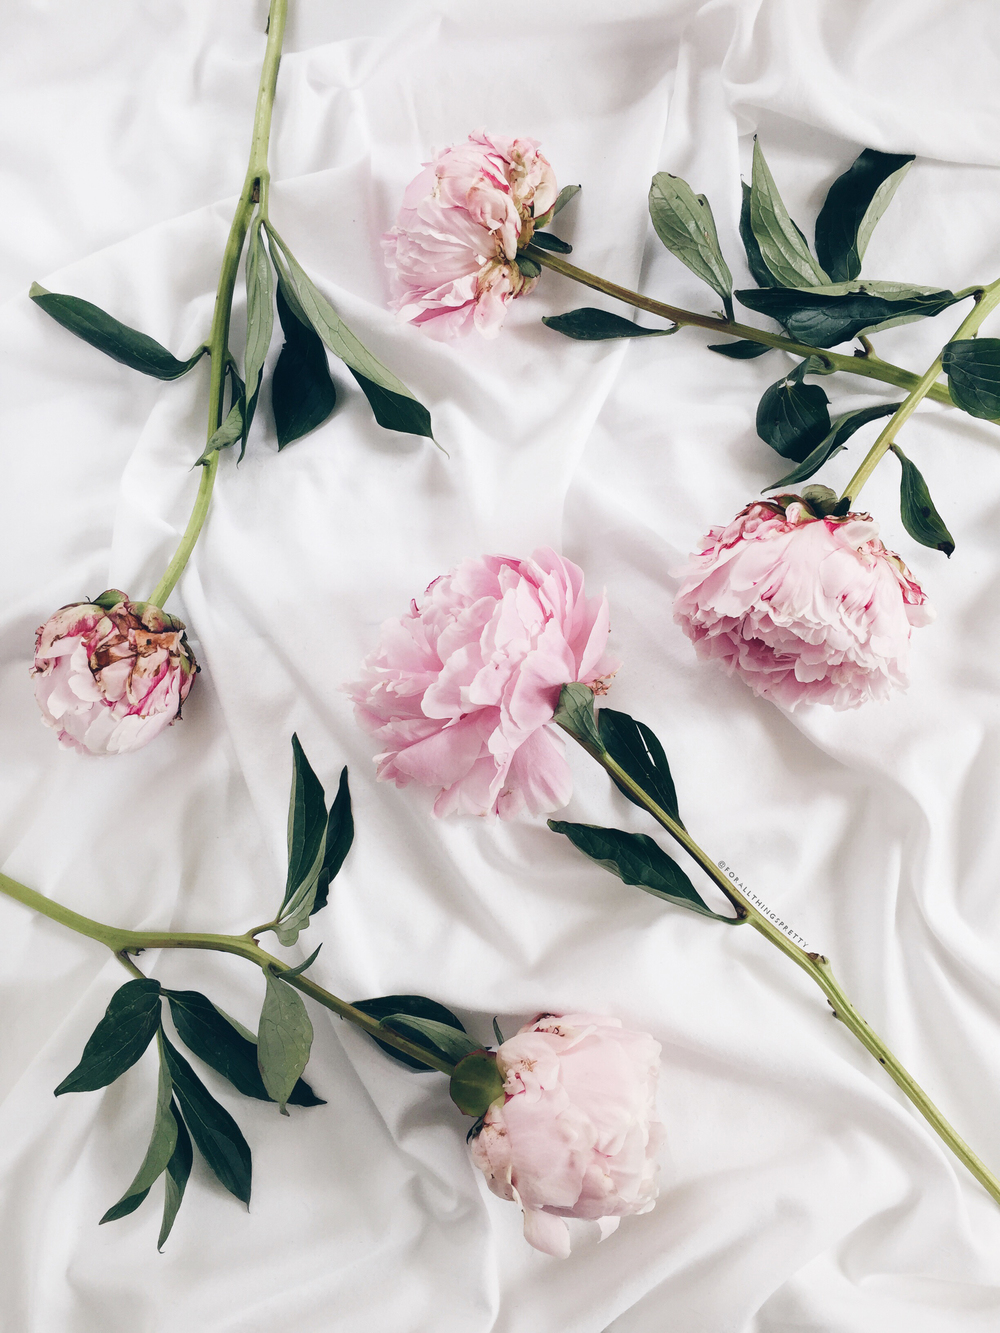 Dress Up Your Tech Peony Wallpaper For All Things Pretty